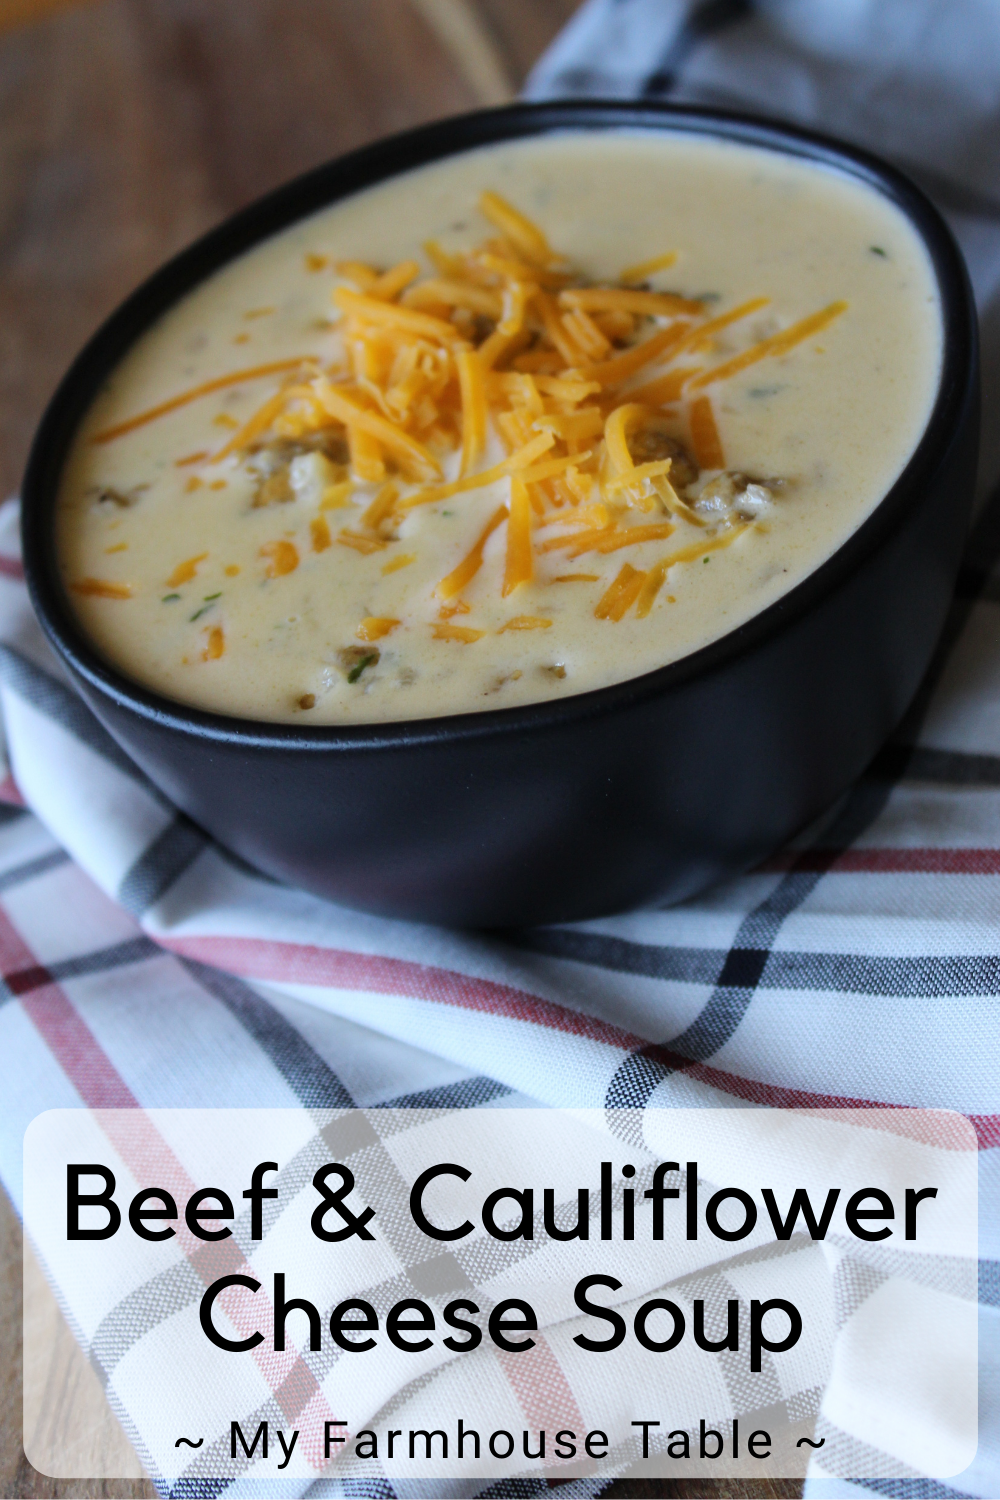 Beef and Cauliflower Cheese Soup Healthy Ground Beef Soup with Vegetables Simple and Easy Recipe One Pan Meal Hocus Pocus Soup Halloween Soup Recipe Ideas My Farmhouse Table